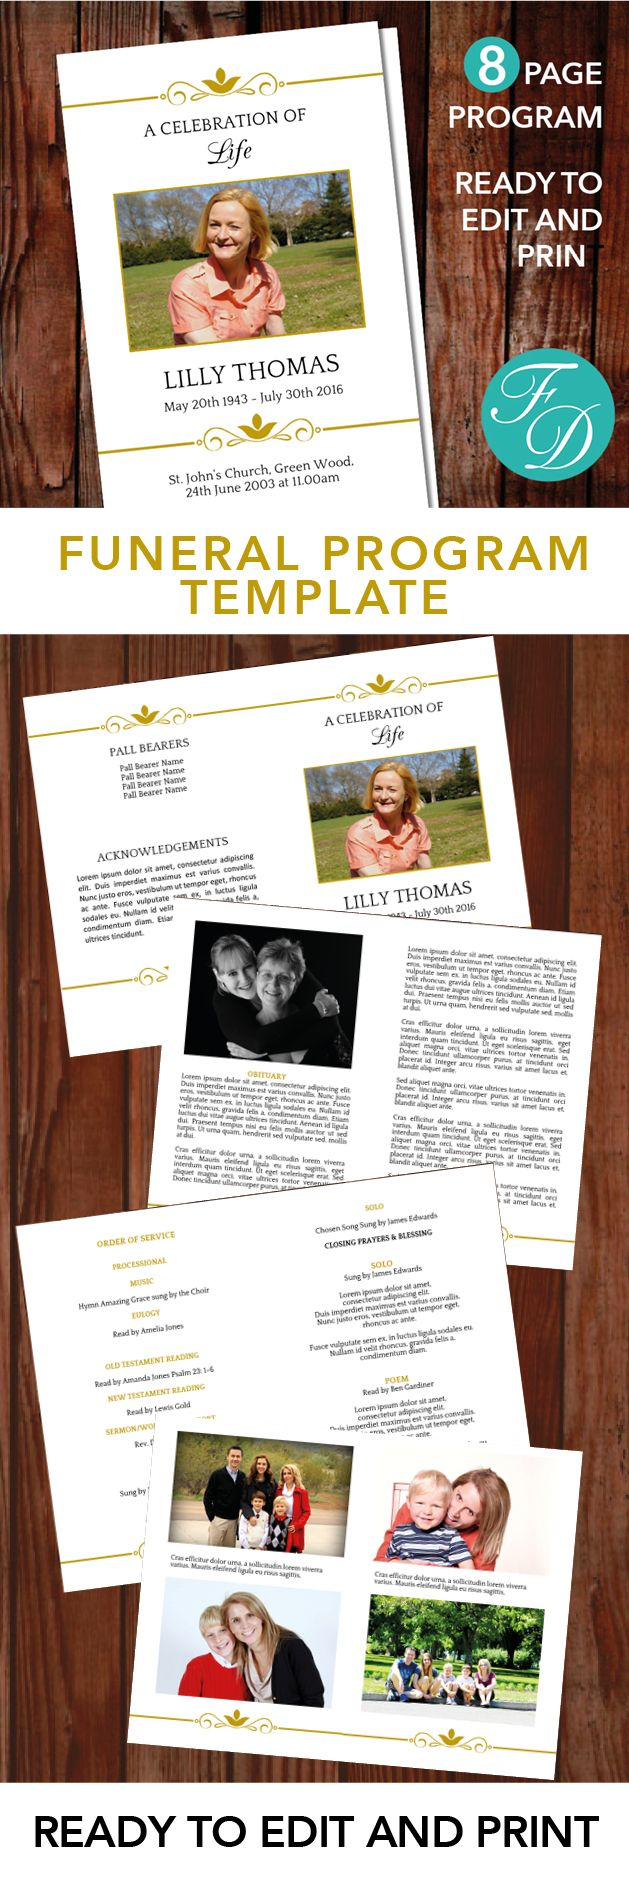 Gold Printable Funeral program ready to edit & print. Simply purchase your funeral templates, download, edit with Microsoft Word and print. #obituarytemplate #memorialprogram #funeralprograms #funeraltemplate #printableprogram #celebrationoflife #funeralprogamtemplates